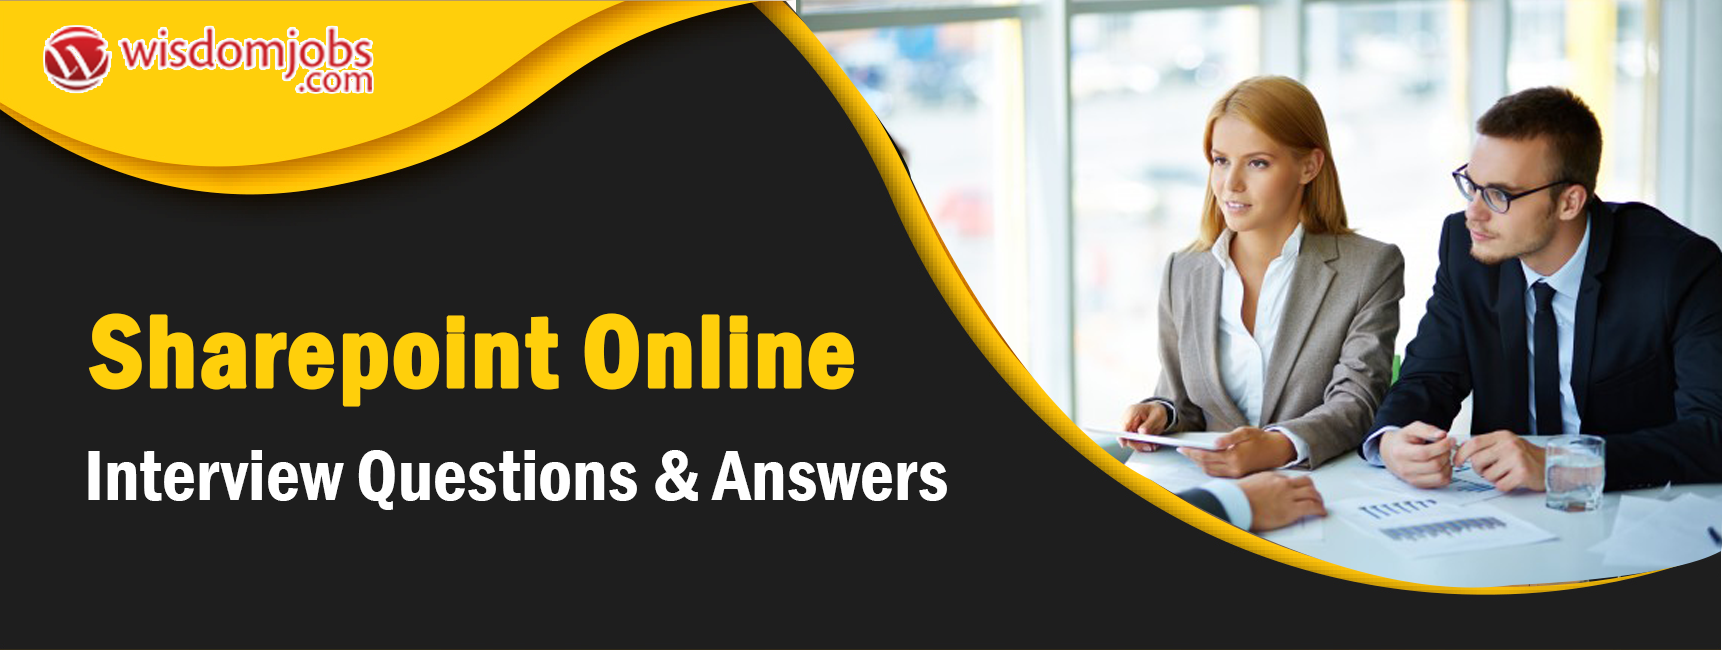 Sharepoint Online Interview Questions